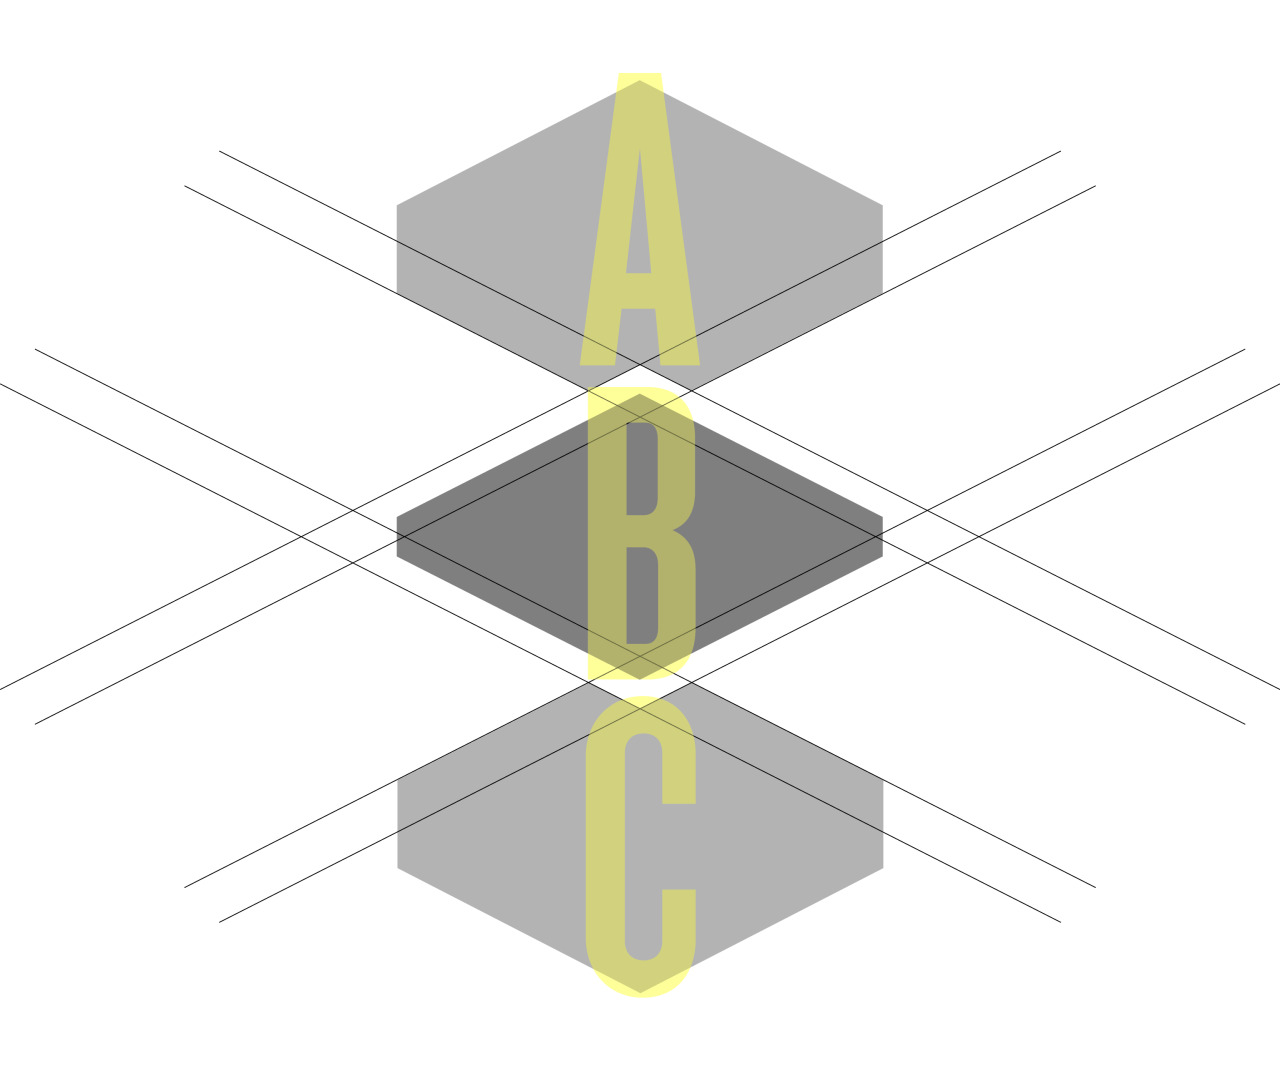 ABC   While working on a logo concept for a project at work, I started playing around with these geometric shapes. I liked their inherent puzzle nature (as they were derived from a compound shape and then broken apart), but I also found their edges and angles intriguing.  This is not perfect, but that's okay. I am trying to push myself to be more creative and put more work up.